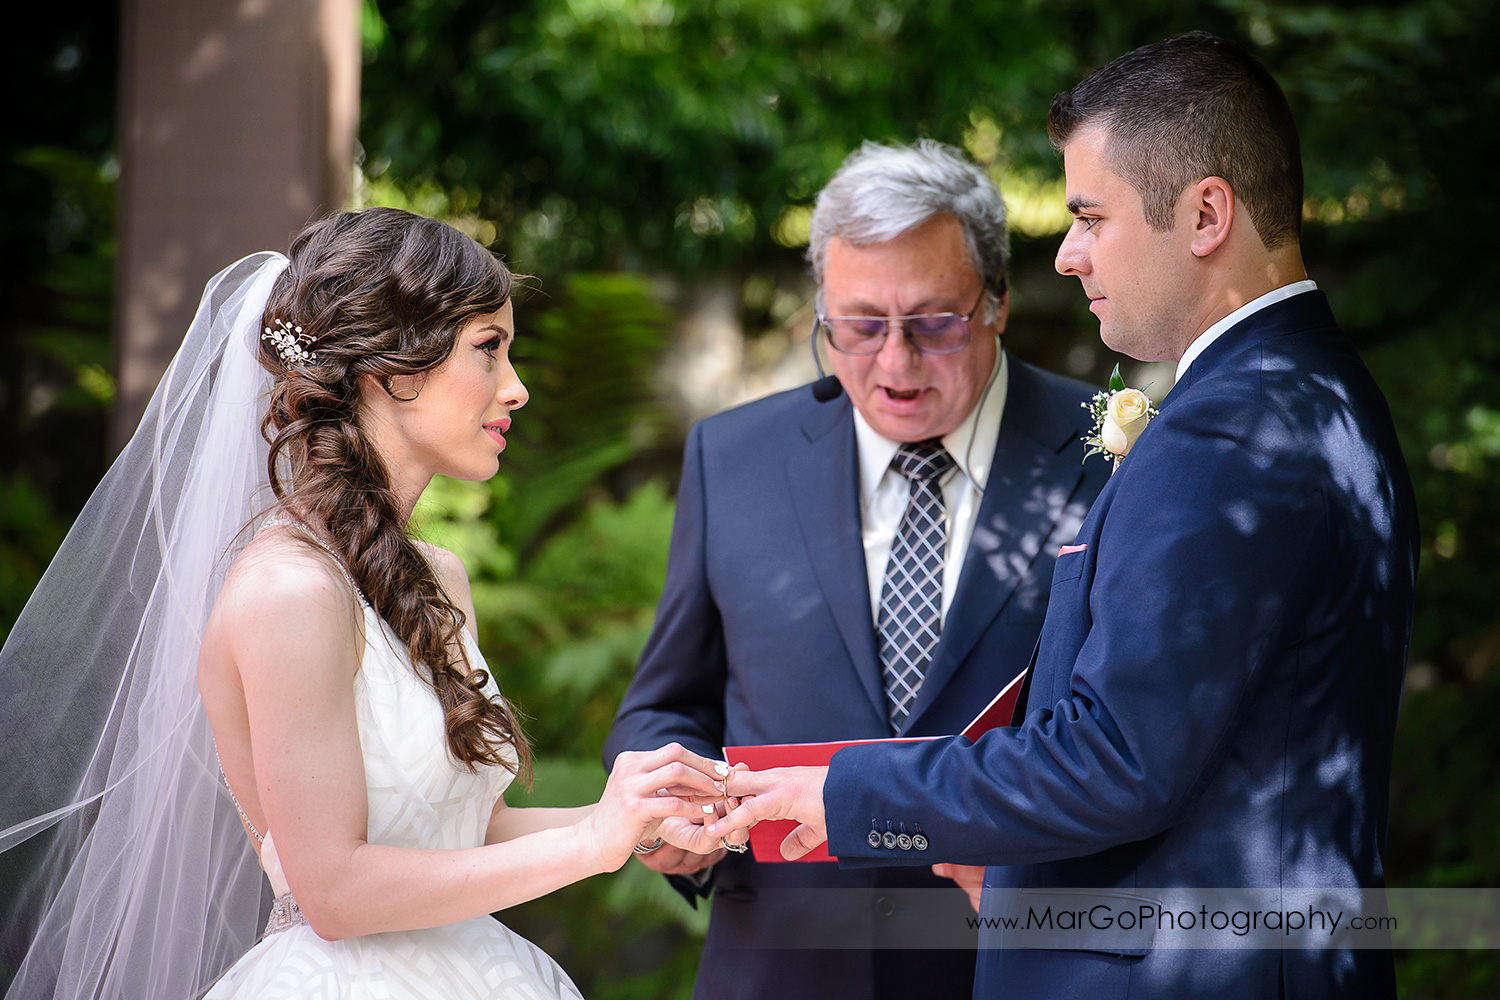 bride putting ring on groom's finger during wedding ceremony at Saratoga Foothill Club